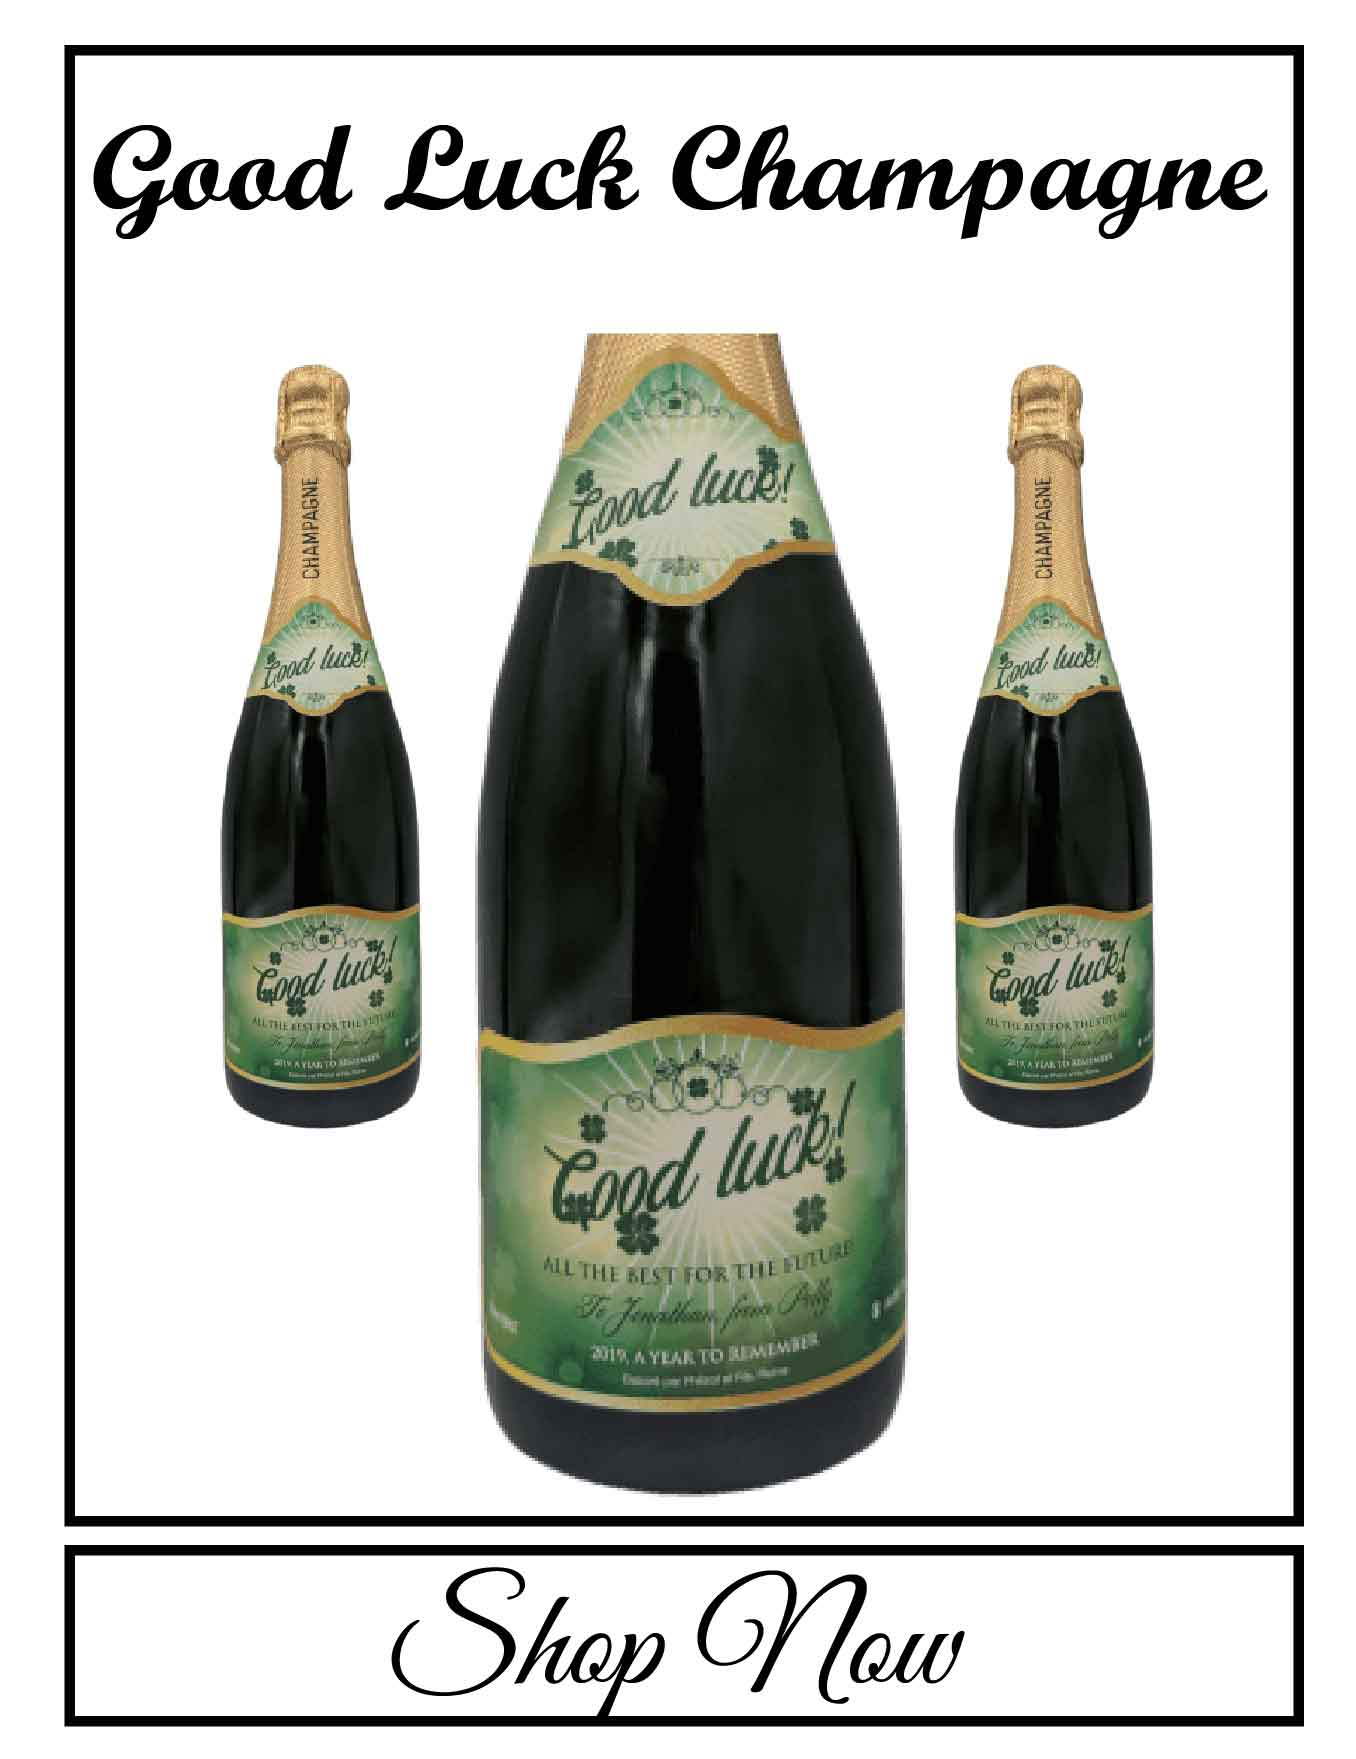 personalised Champagne bottle label delivery uk sparkling wine good luck gift present